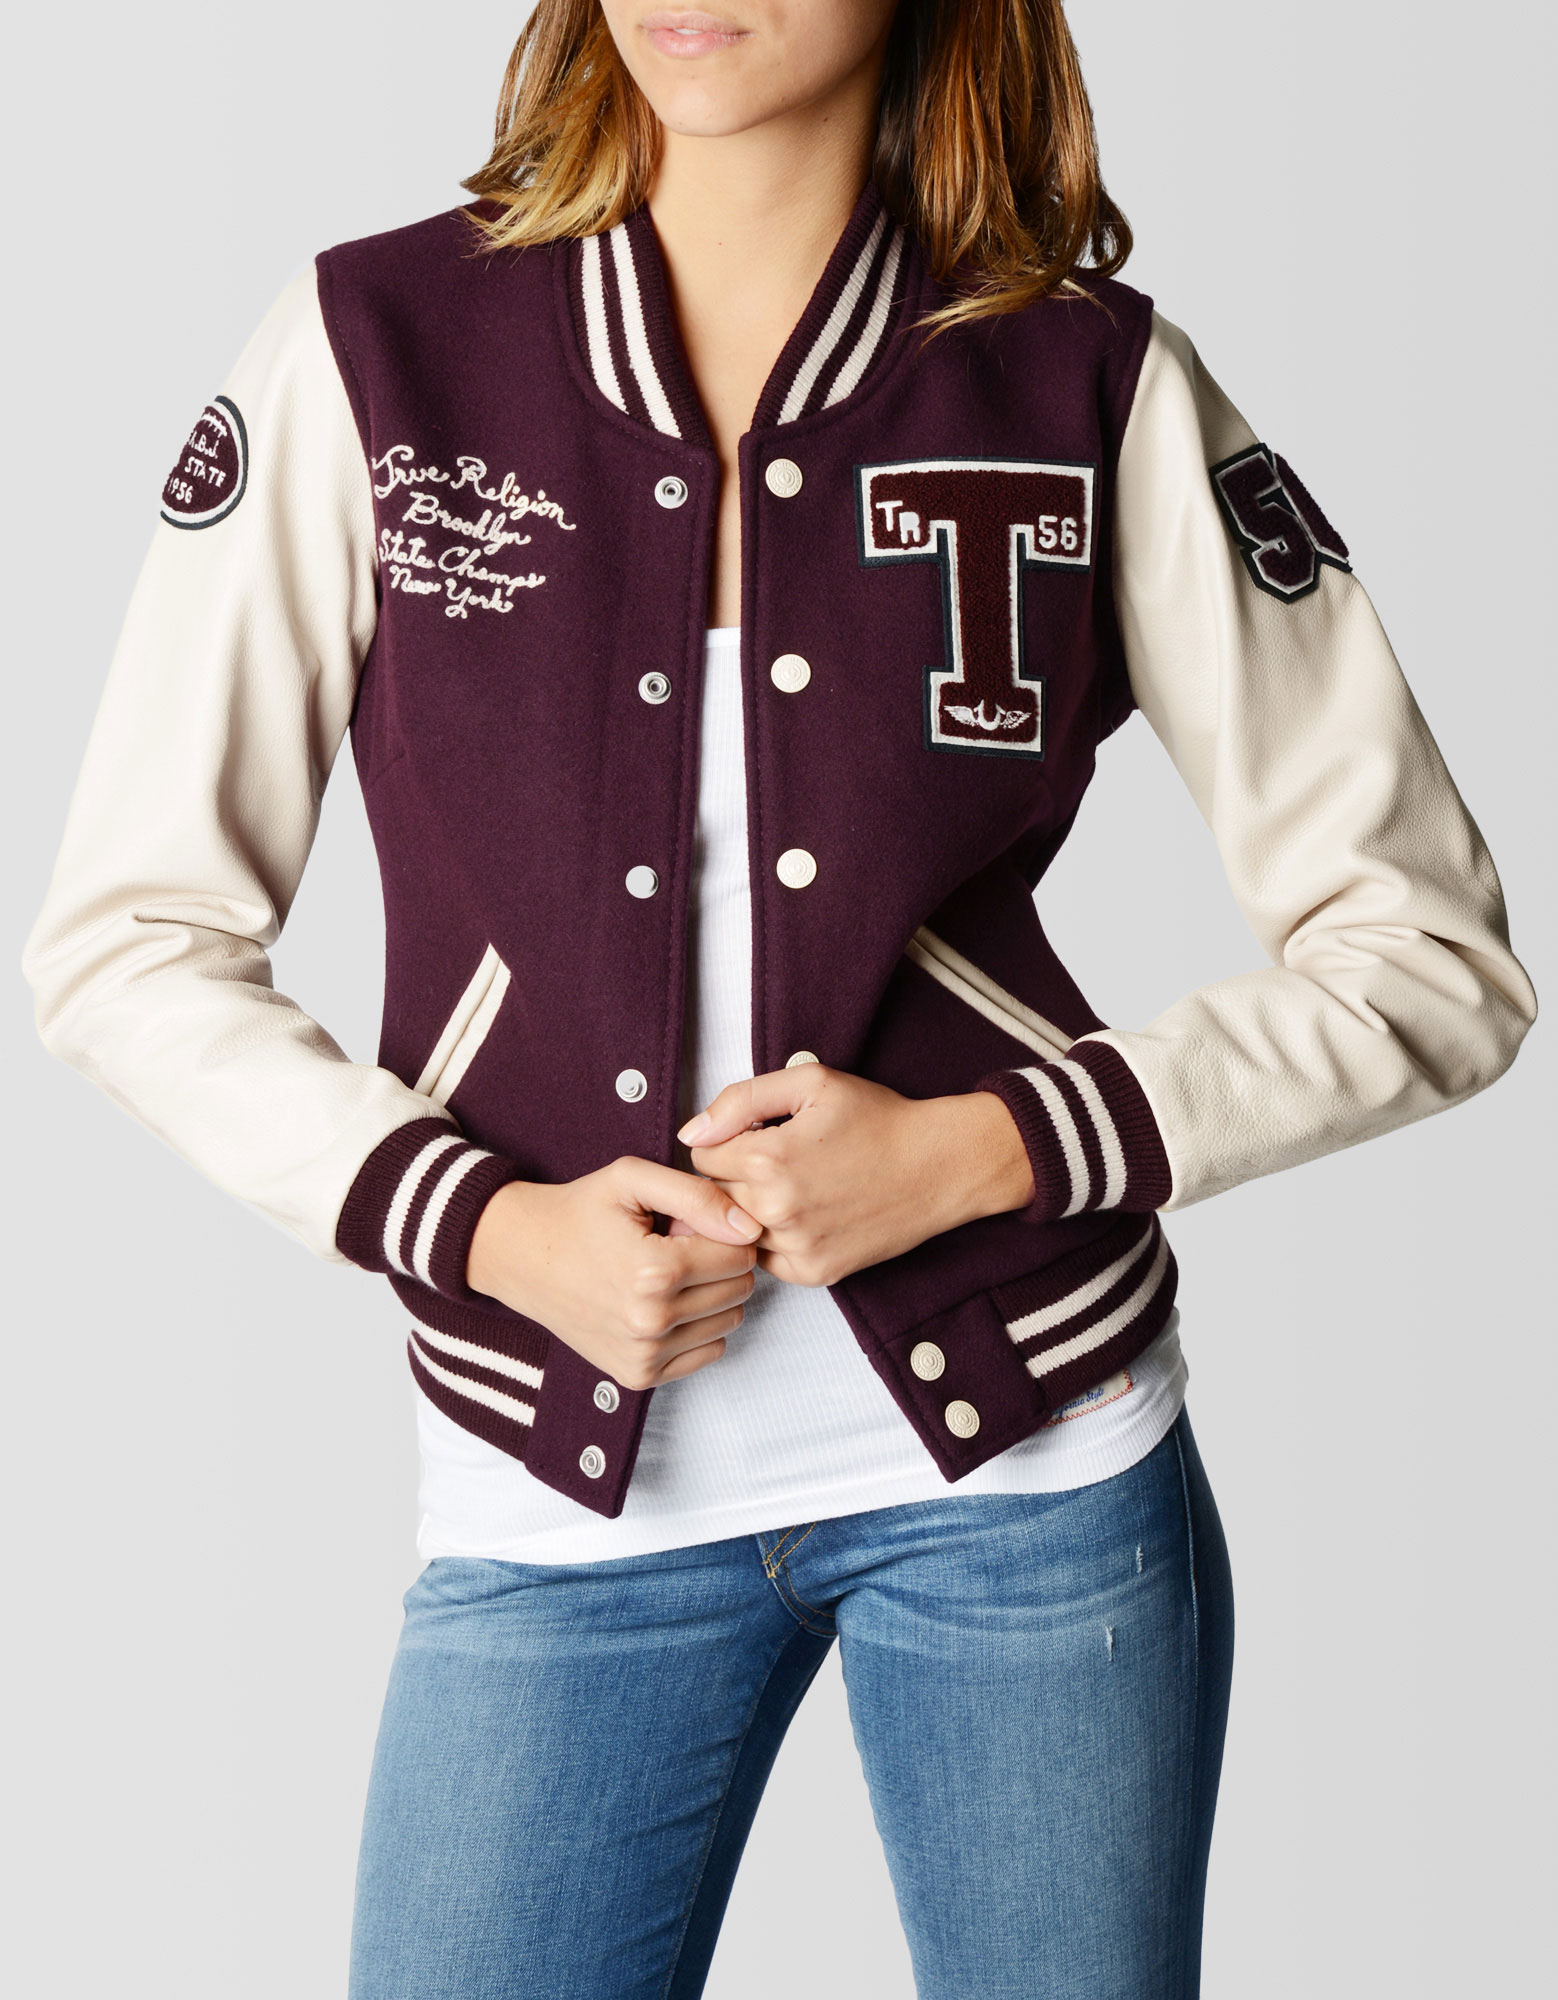 True religion varsity jacket womens